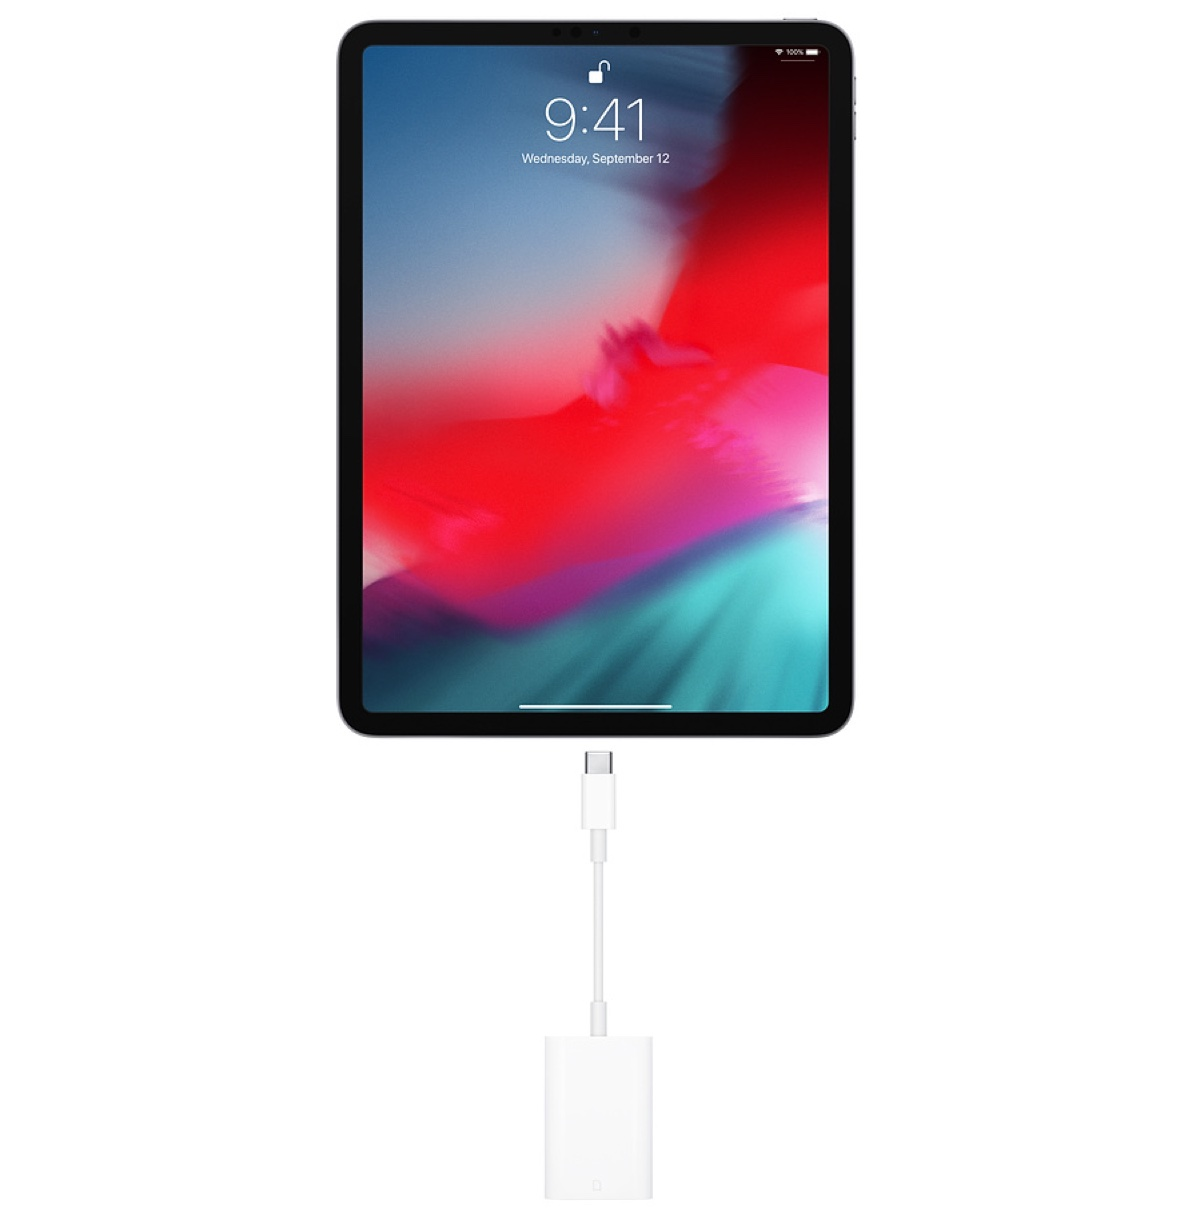 Su Apple Store disponibile il lettore da USB-C a scheda SD per Mac e iPad Pro 2018